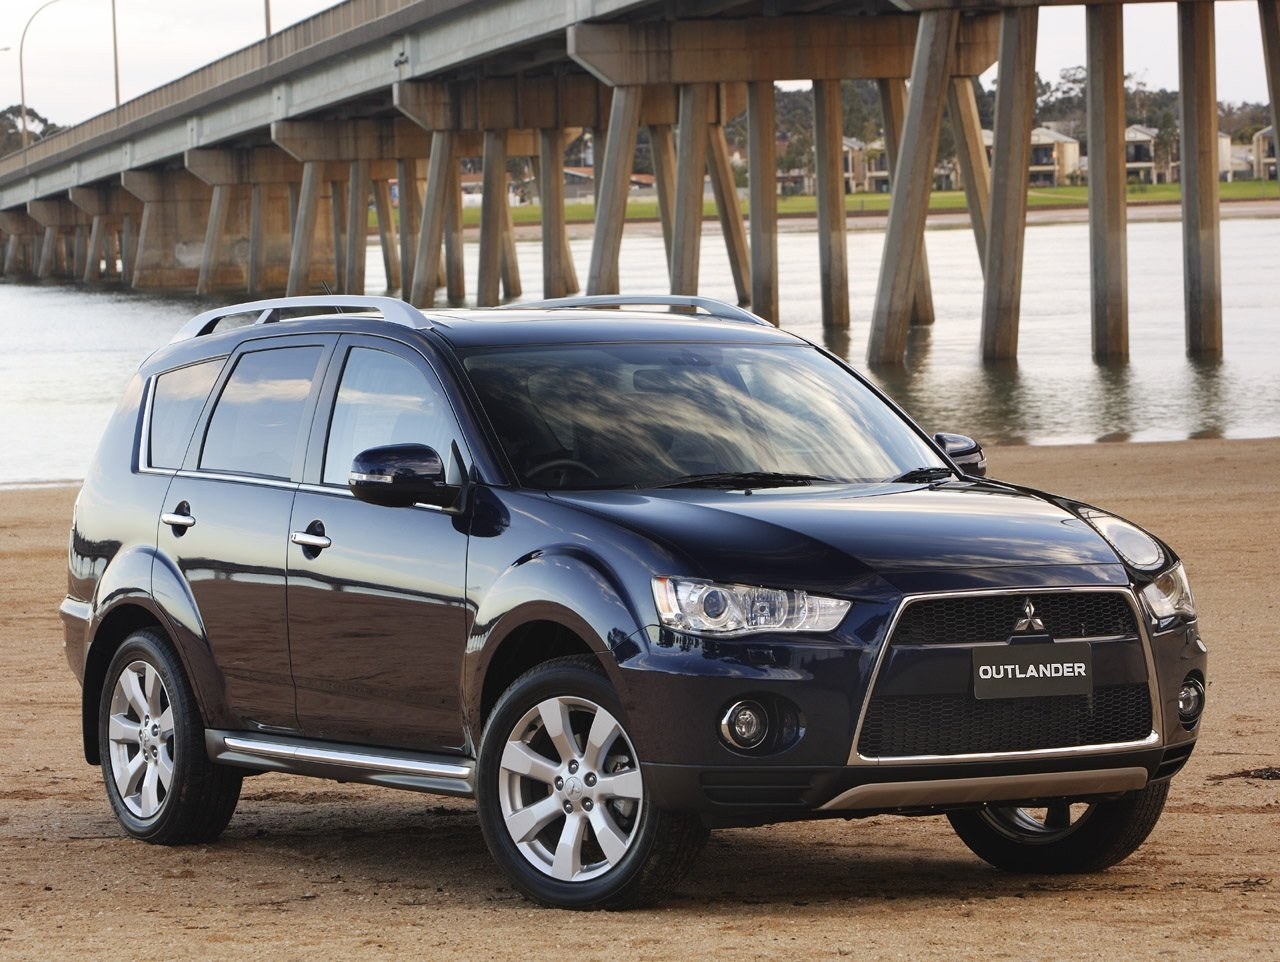 Latest Mitsubishi Outlander Wallpapers Bikes Cars Wallpapers Free Download